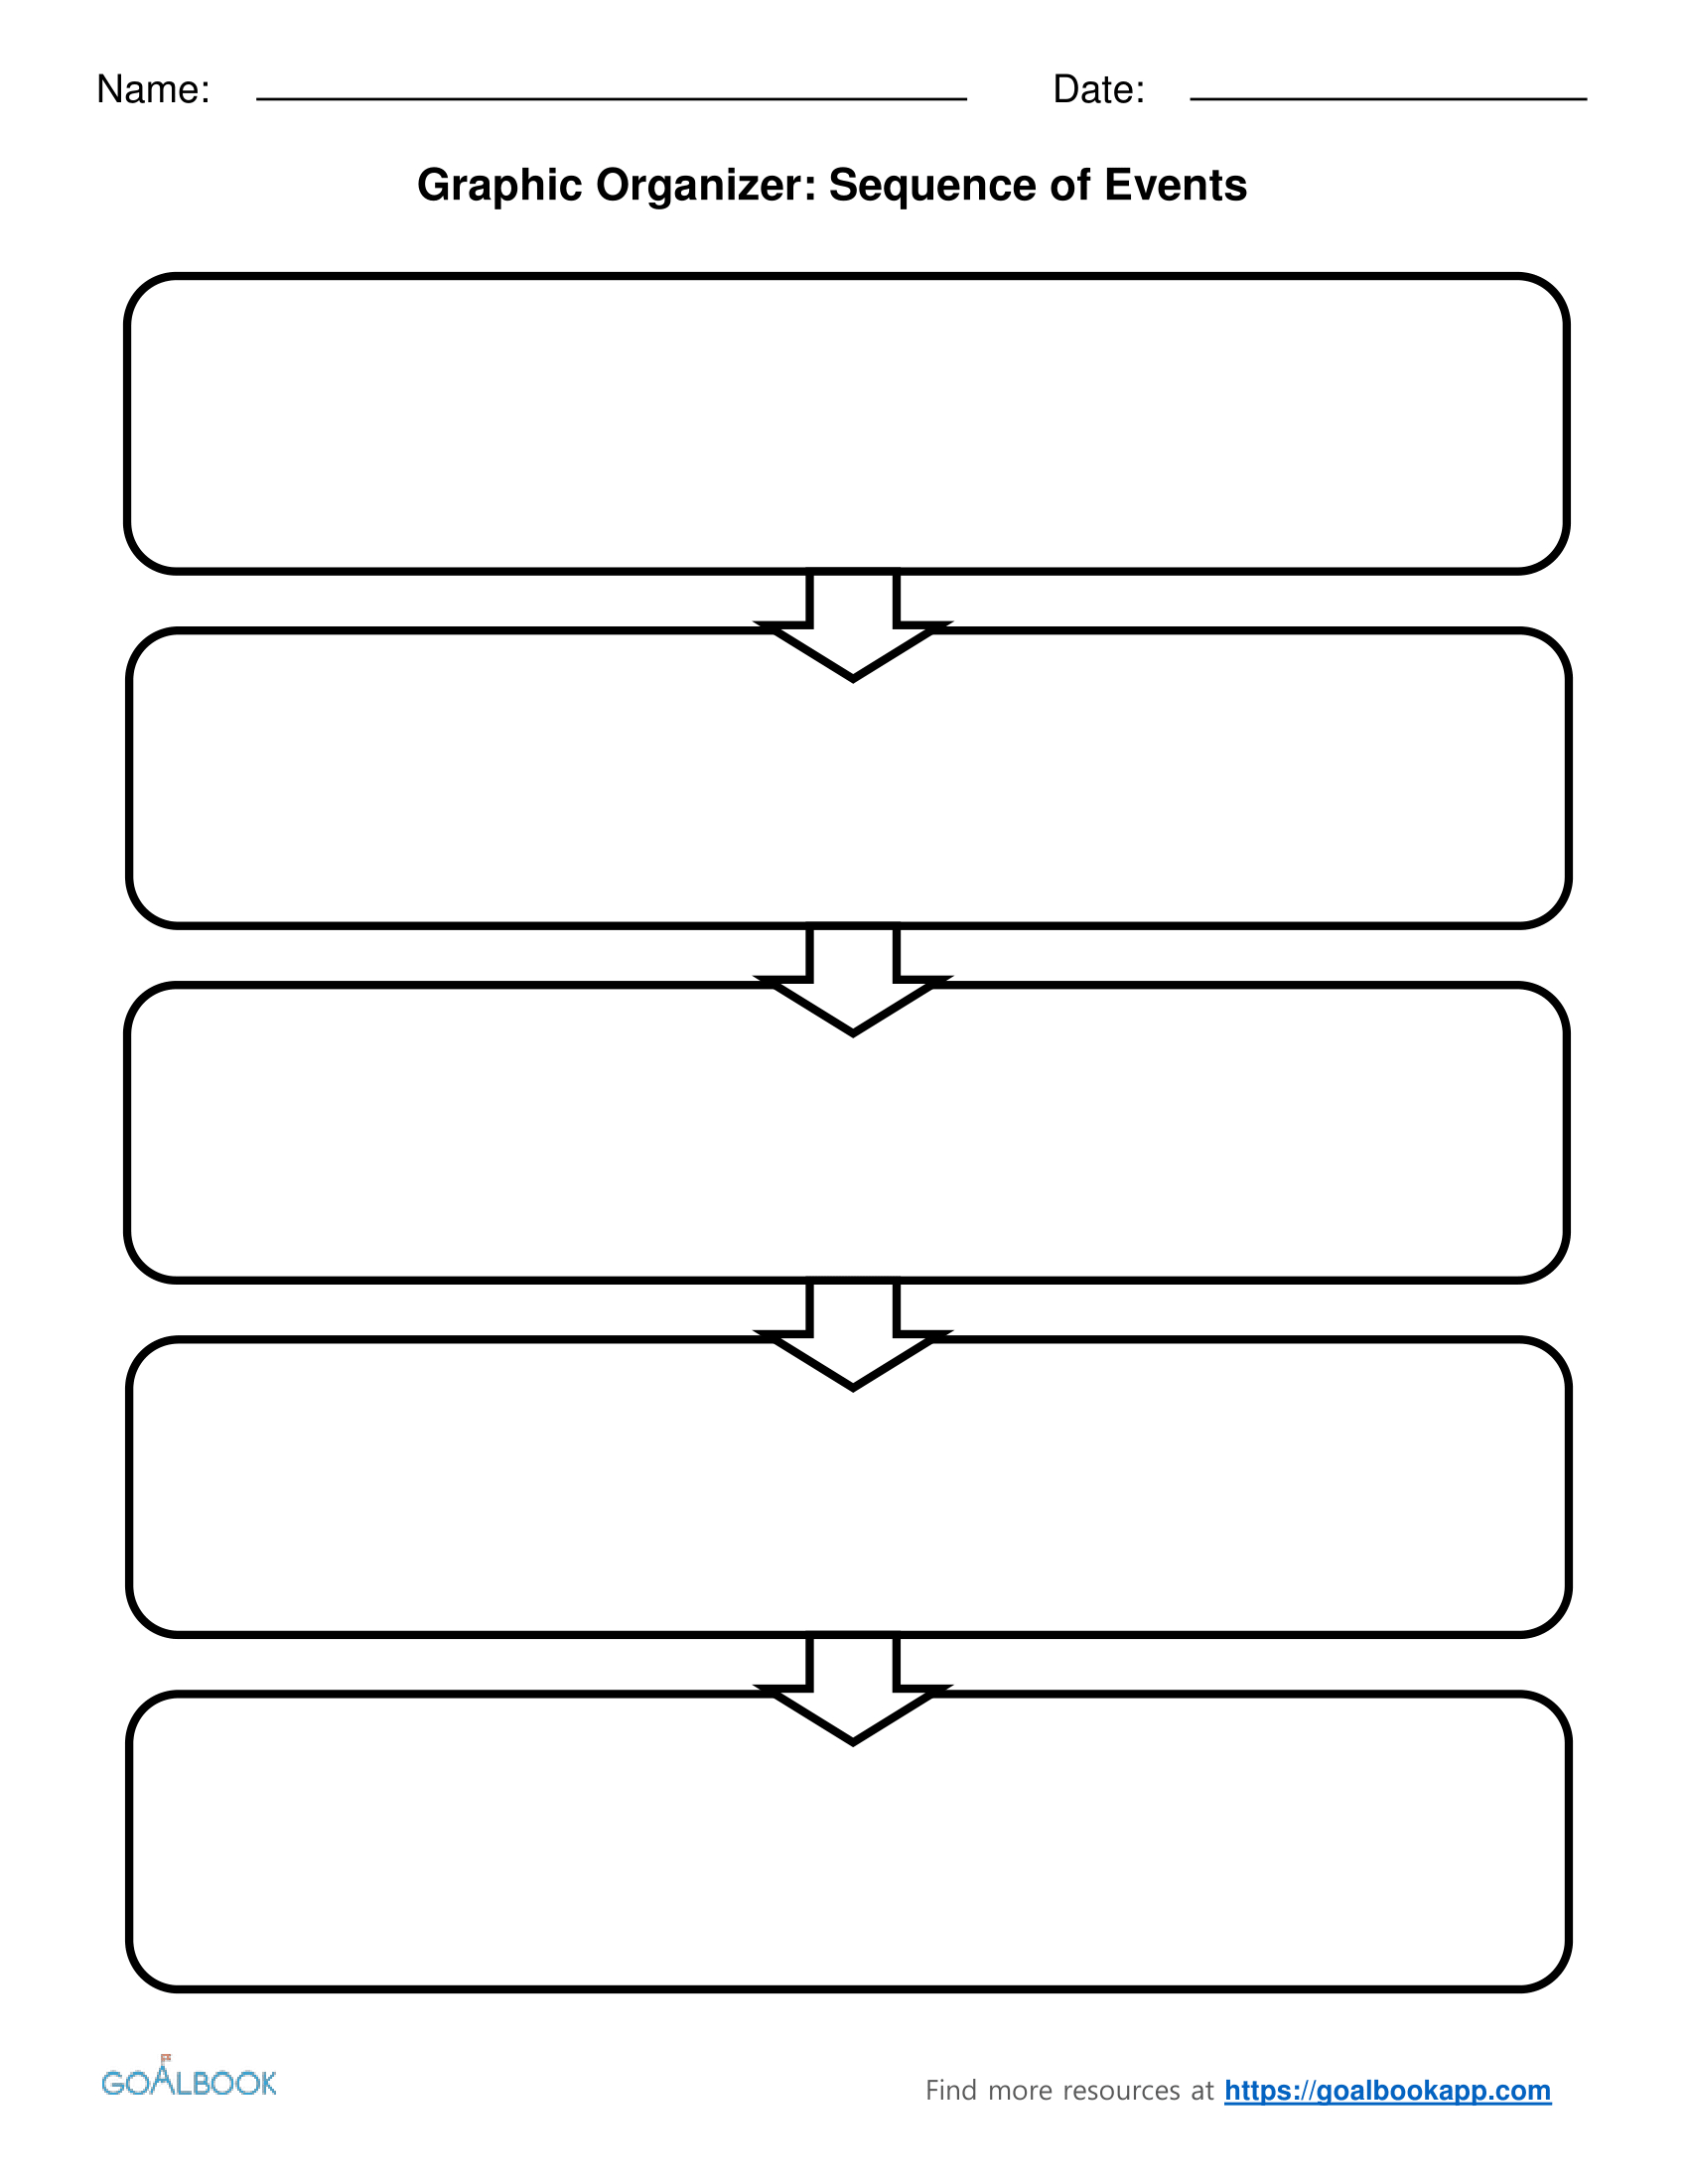 Pinbarbara Warren On Beginning Of The Year | Graphic Organizers - Free Printable Sequence Of Events Graphic Organizer